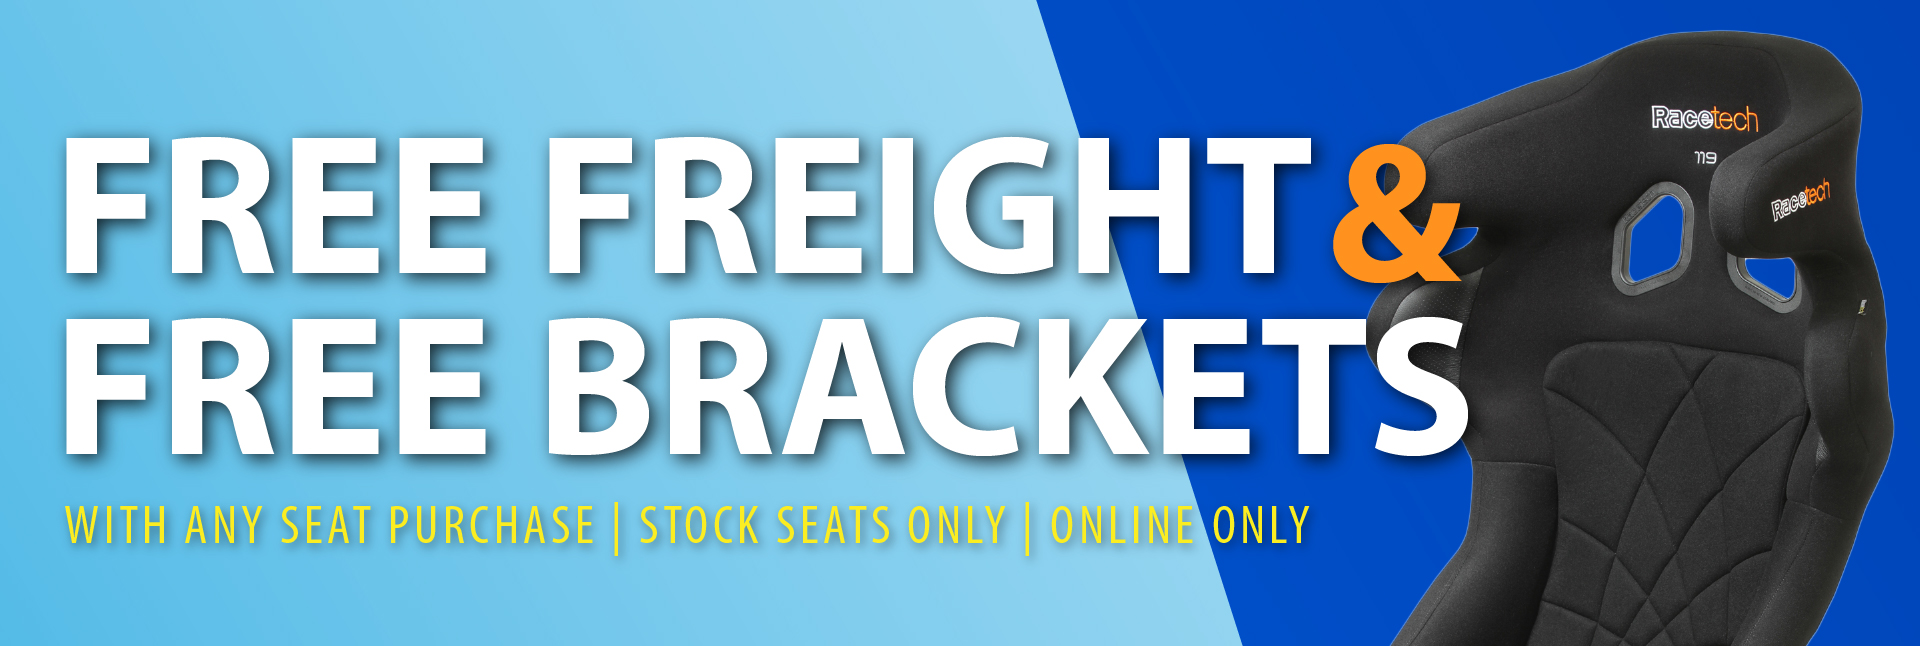 Free freight and brackets